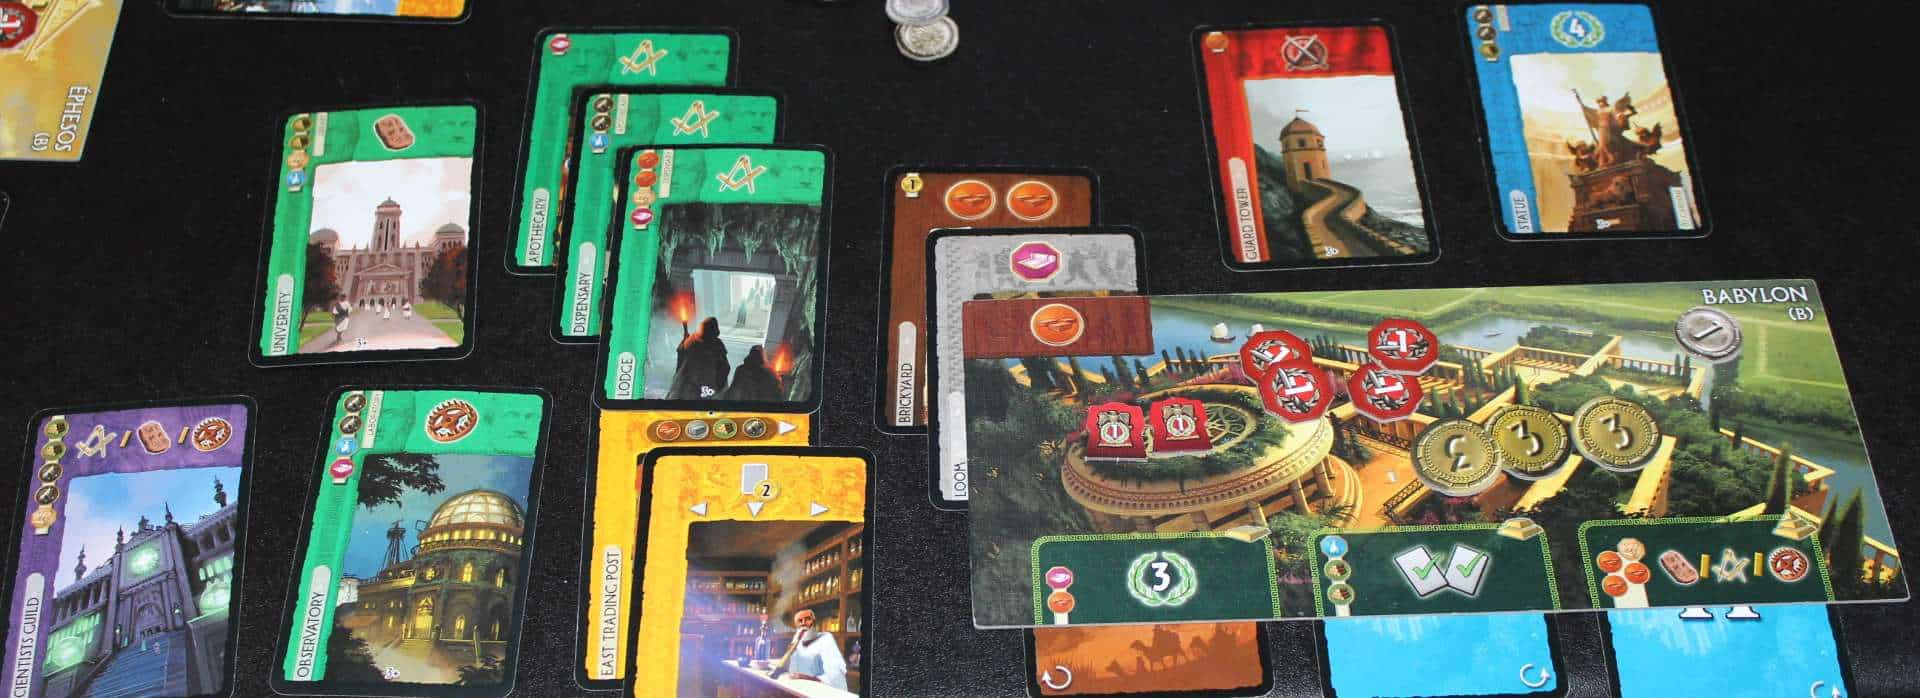 Time proven and tested - 7 Wonders is an epic board game that is considered by many one of the best family board games of all time!